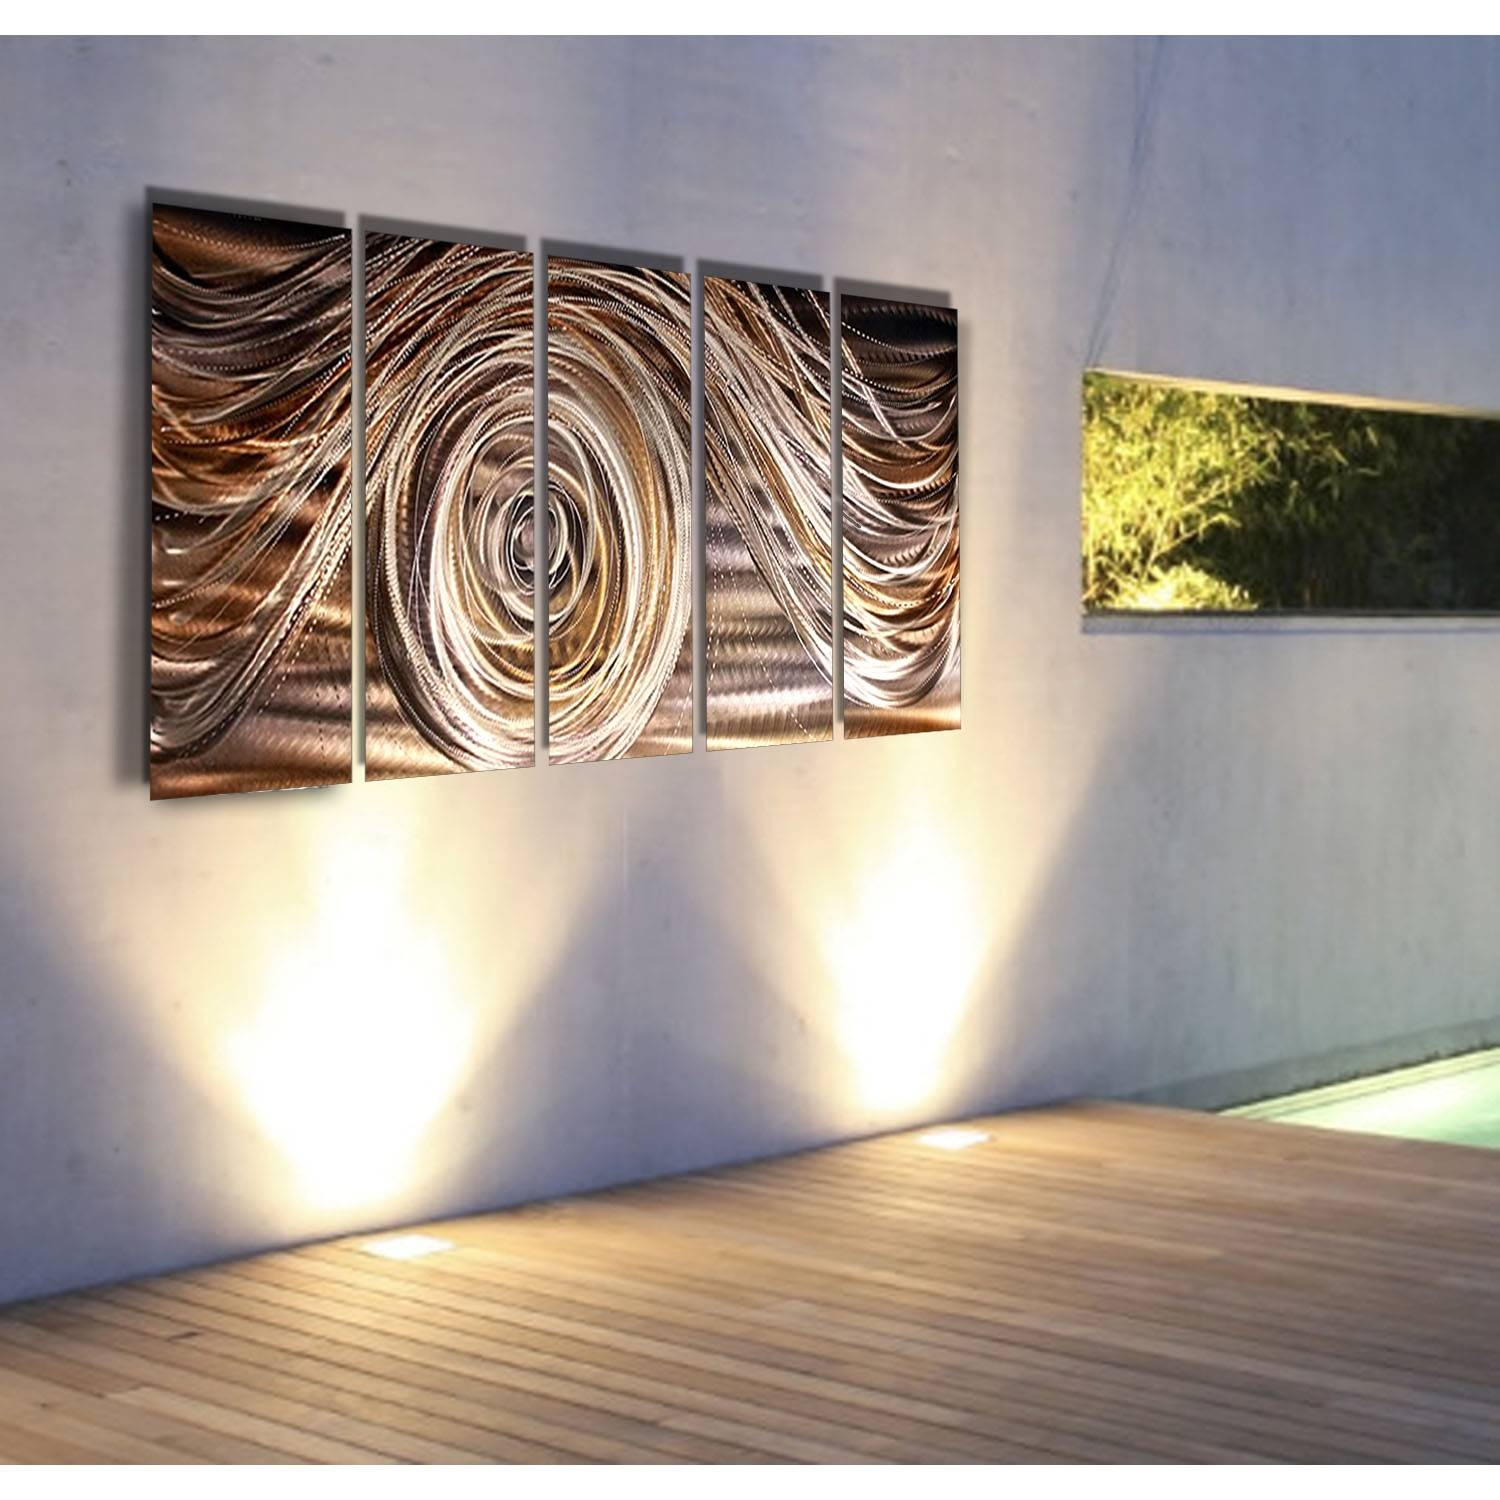 Mocha Swirl – Charcoal, Brown, Gold, And Silver Metal Wall Art – 5 With Newest Silver And Gold Wall Art (View 11 of 15)